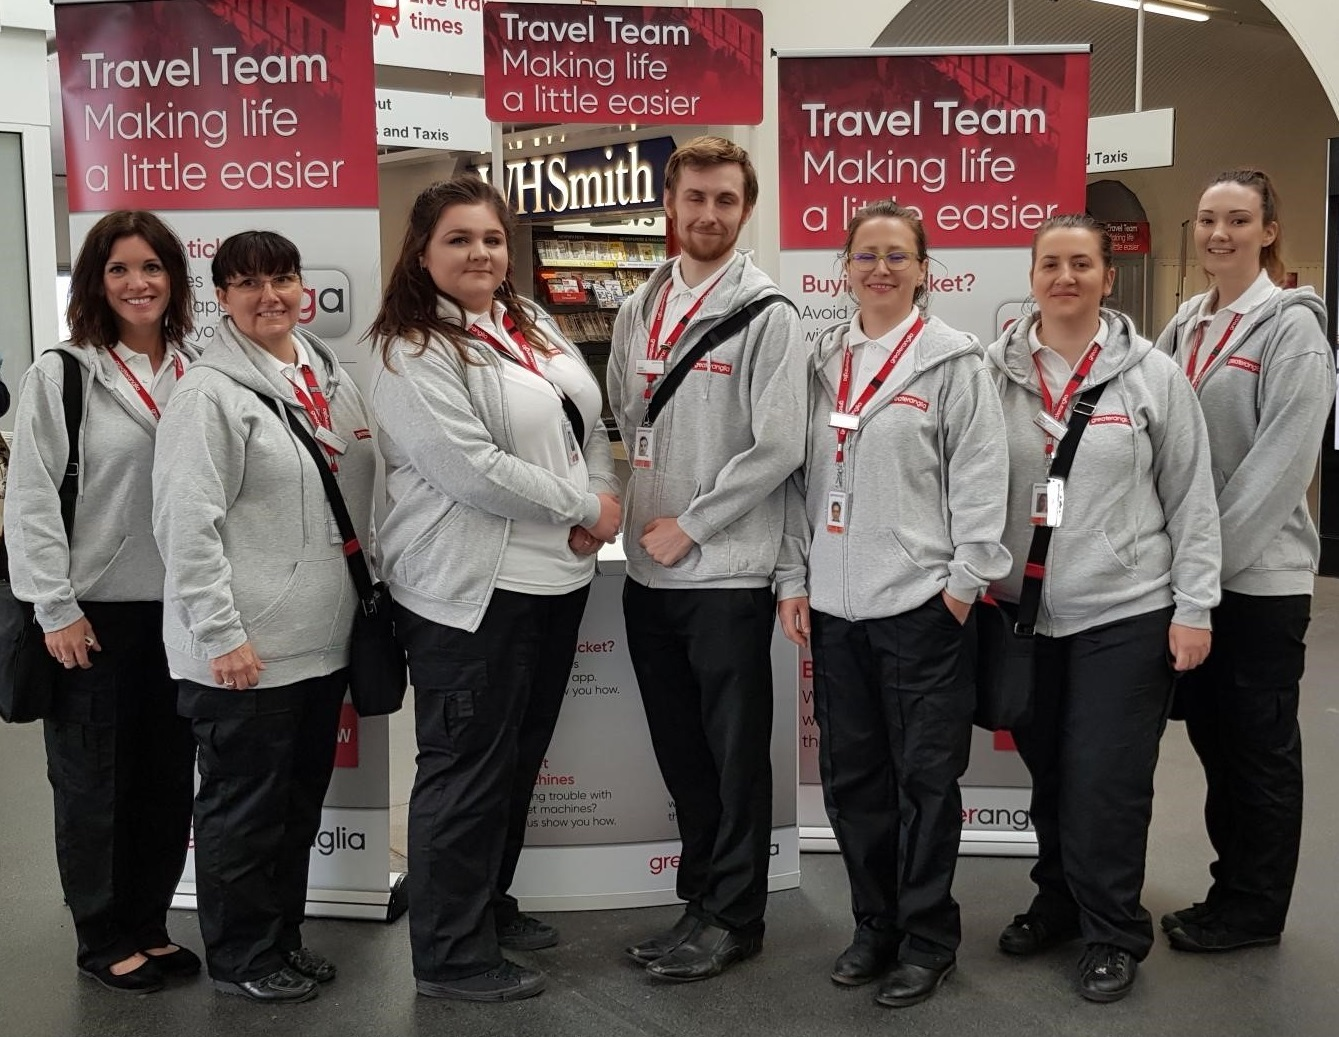 Greater Anglia's travel team